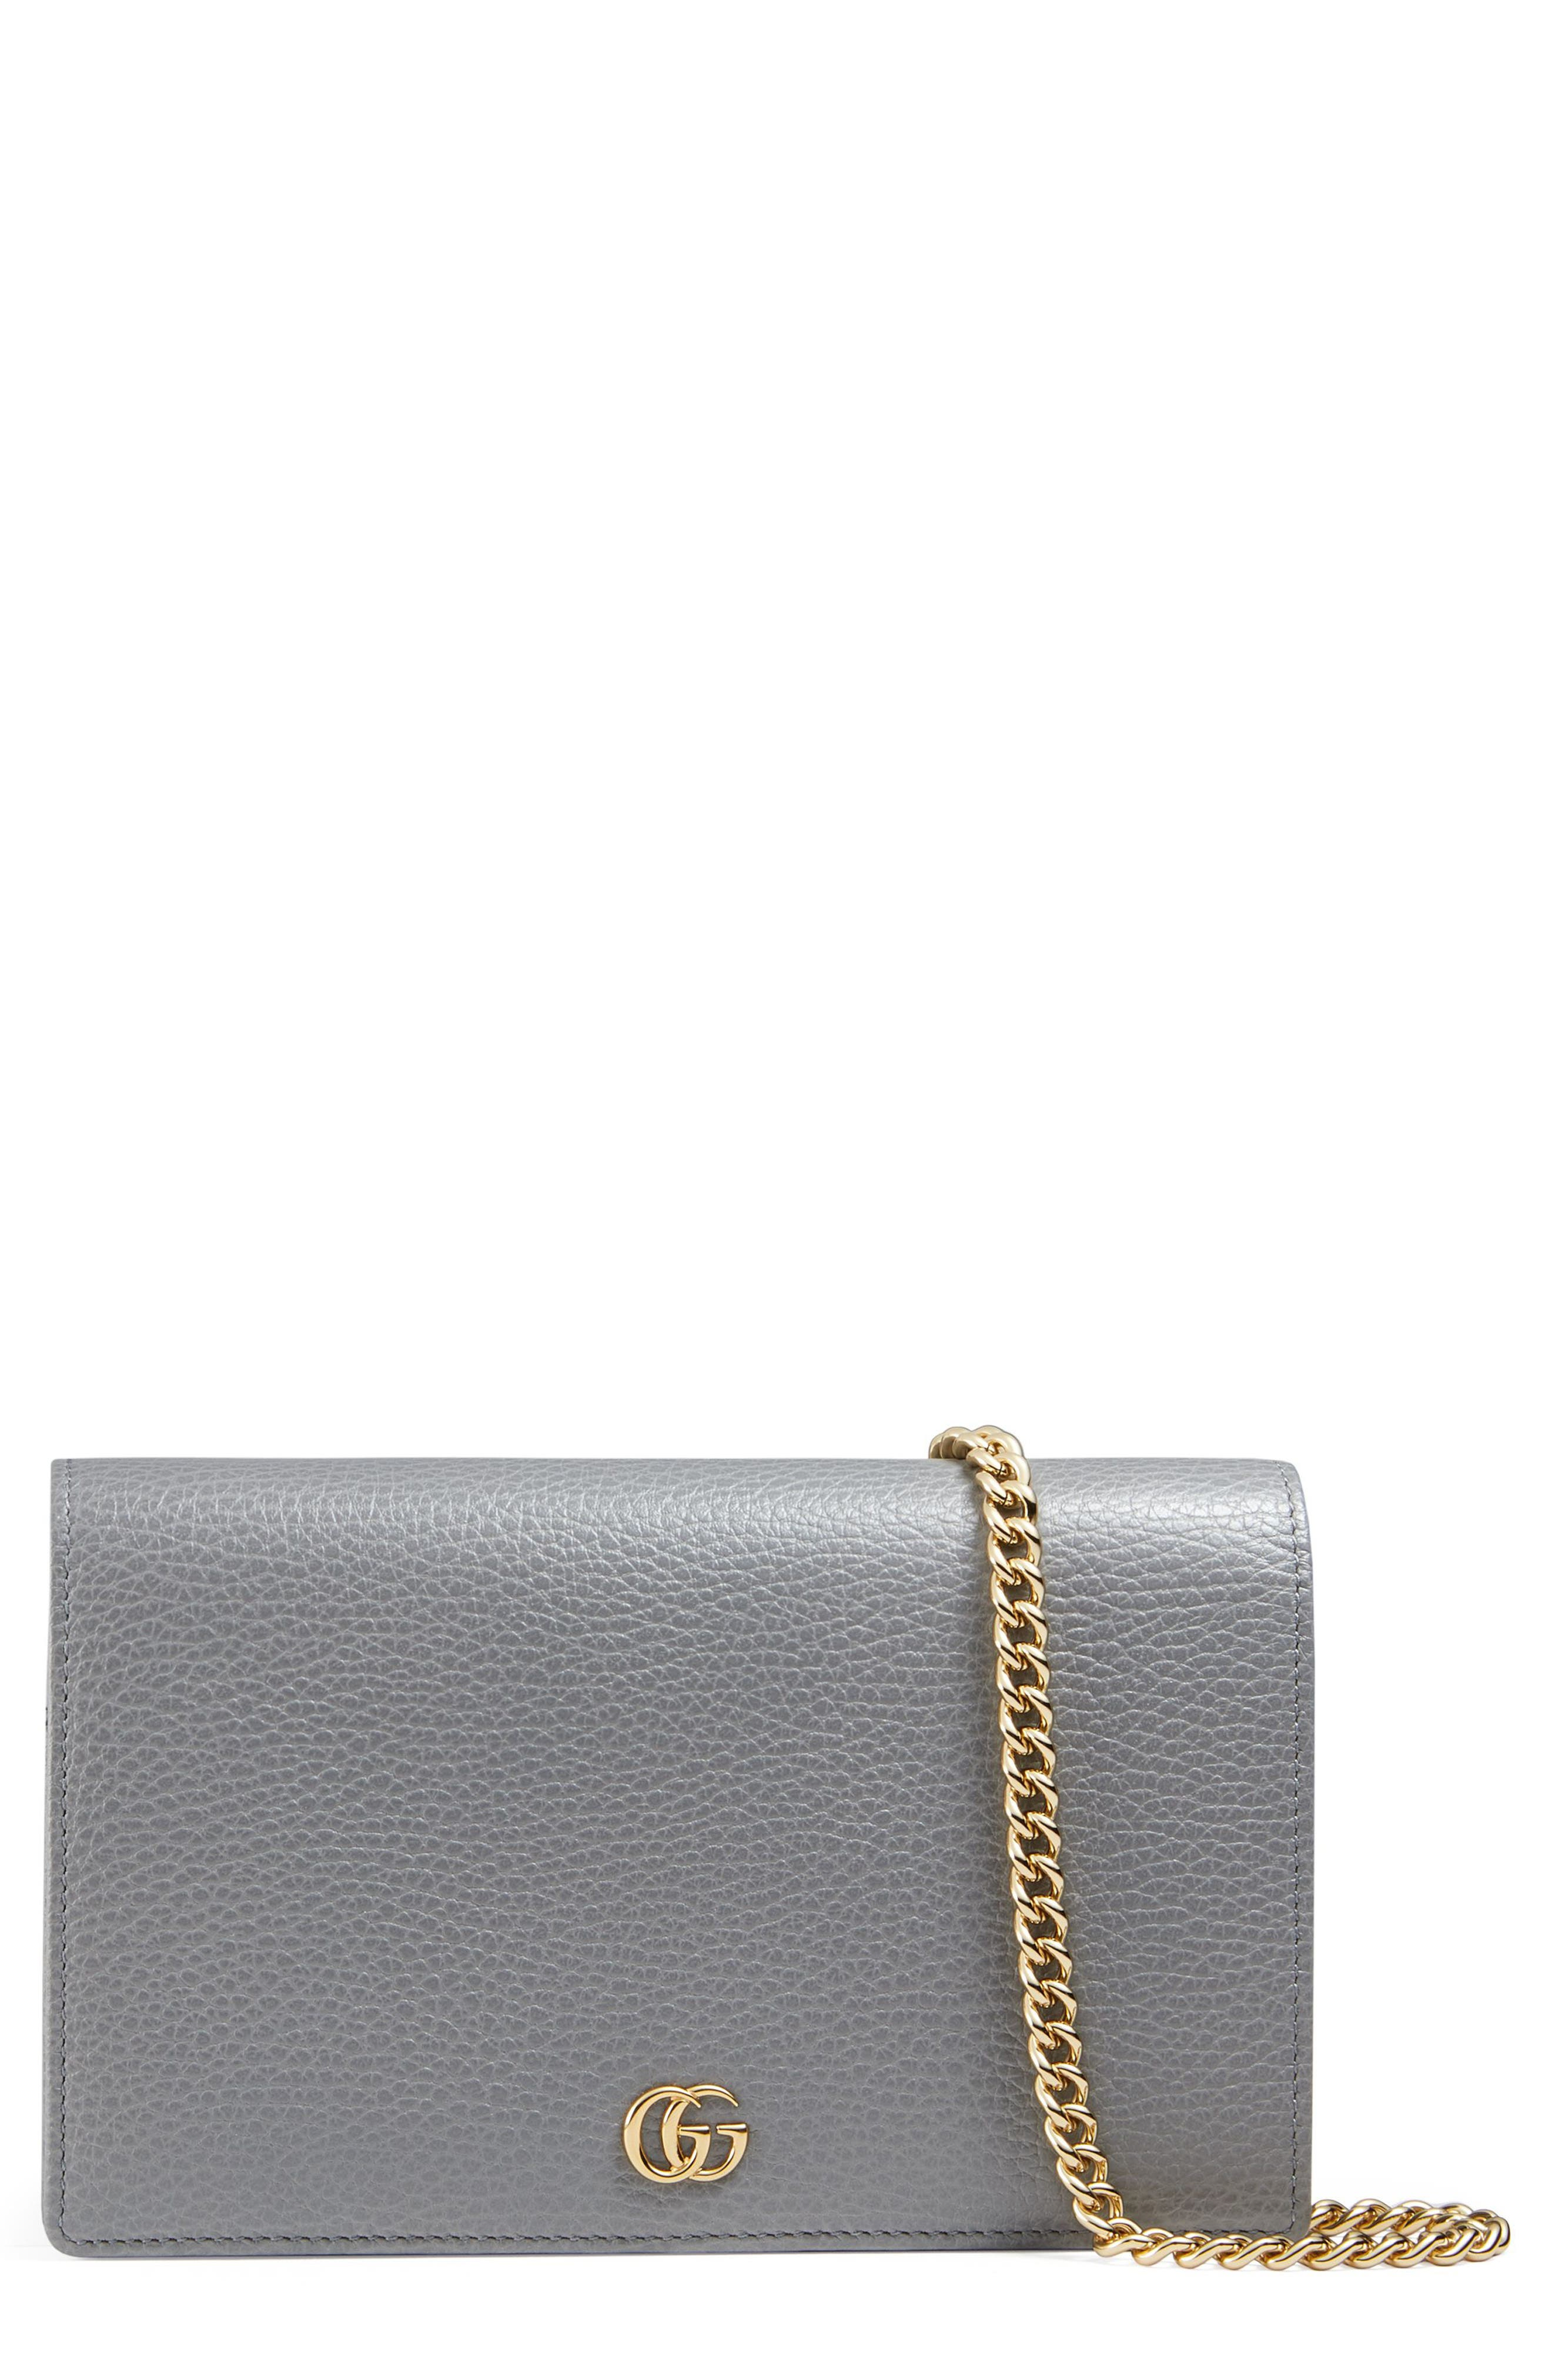 Alternate Image 1 Selected - Gucci Petite Marmont Leather Wallet on a Chain